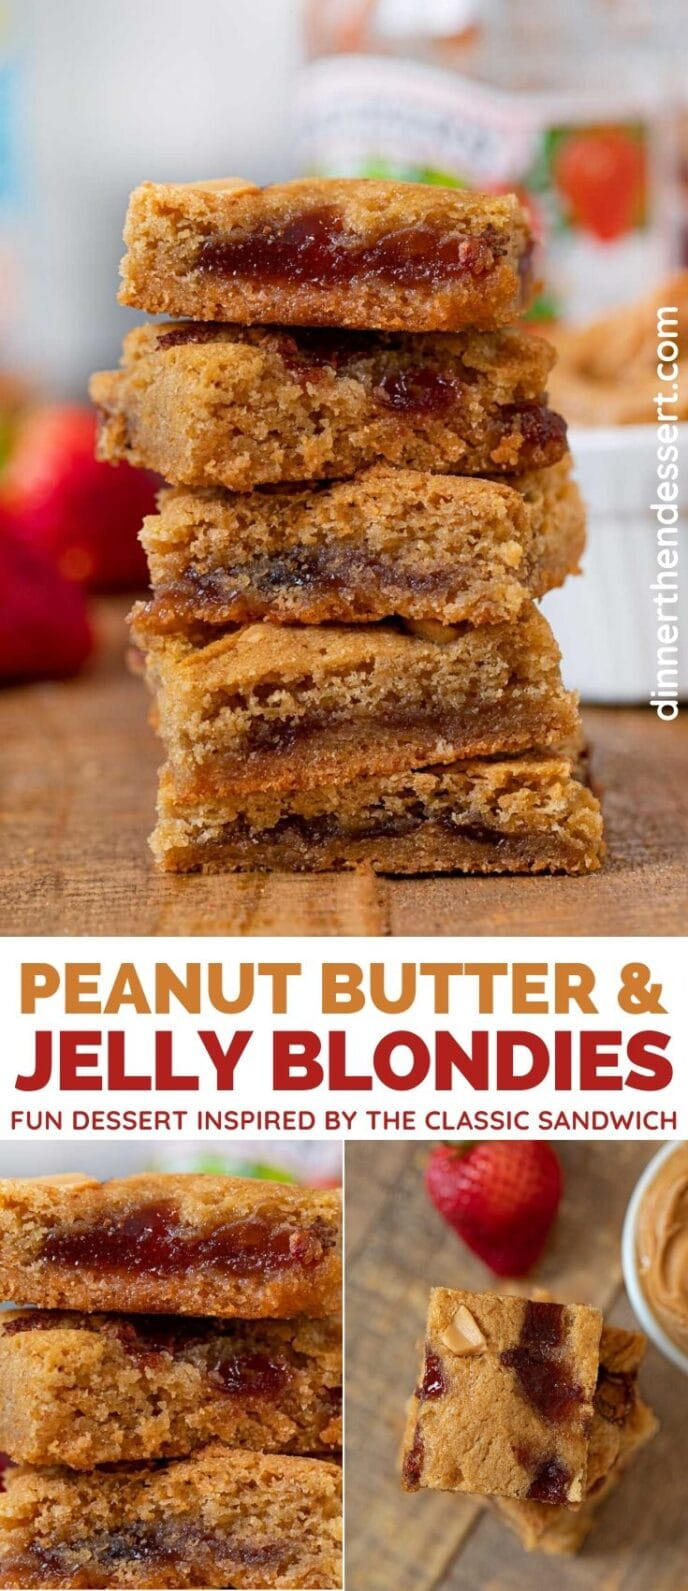 Peanut Butter and Jelly Blondies collage